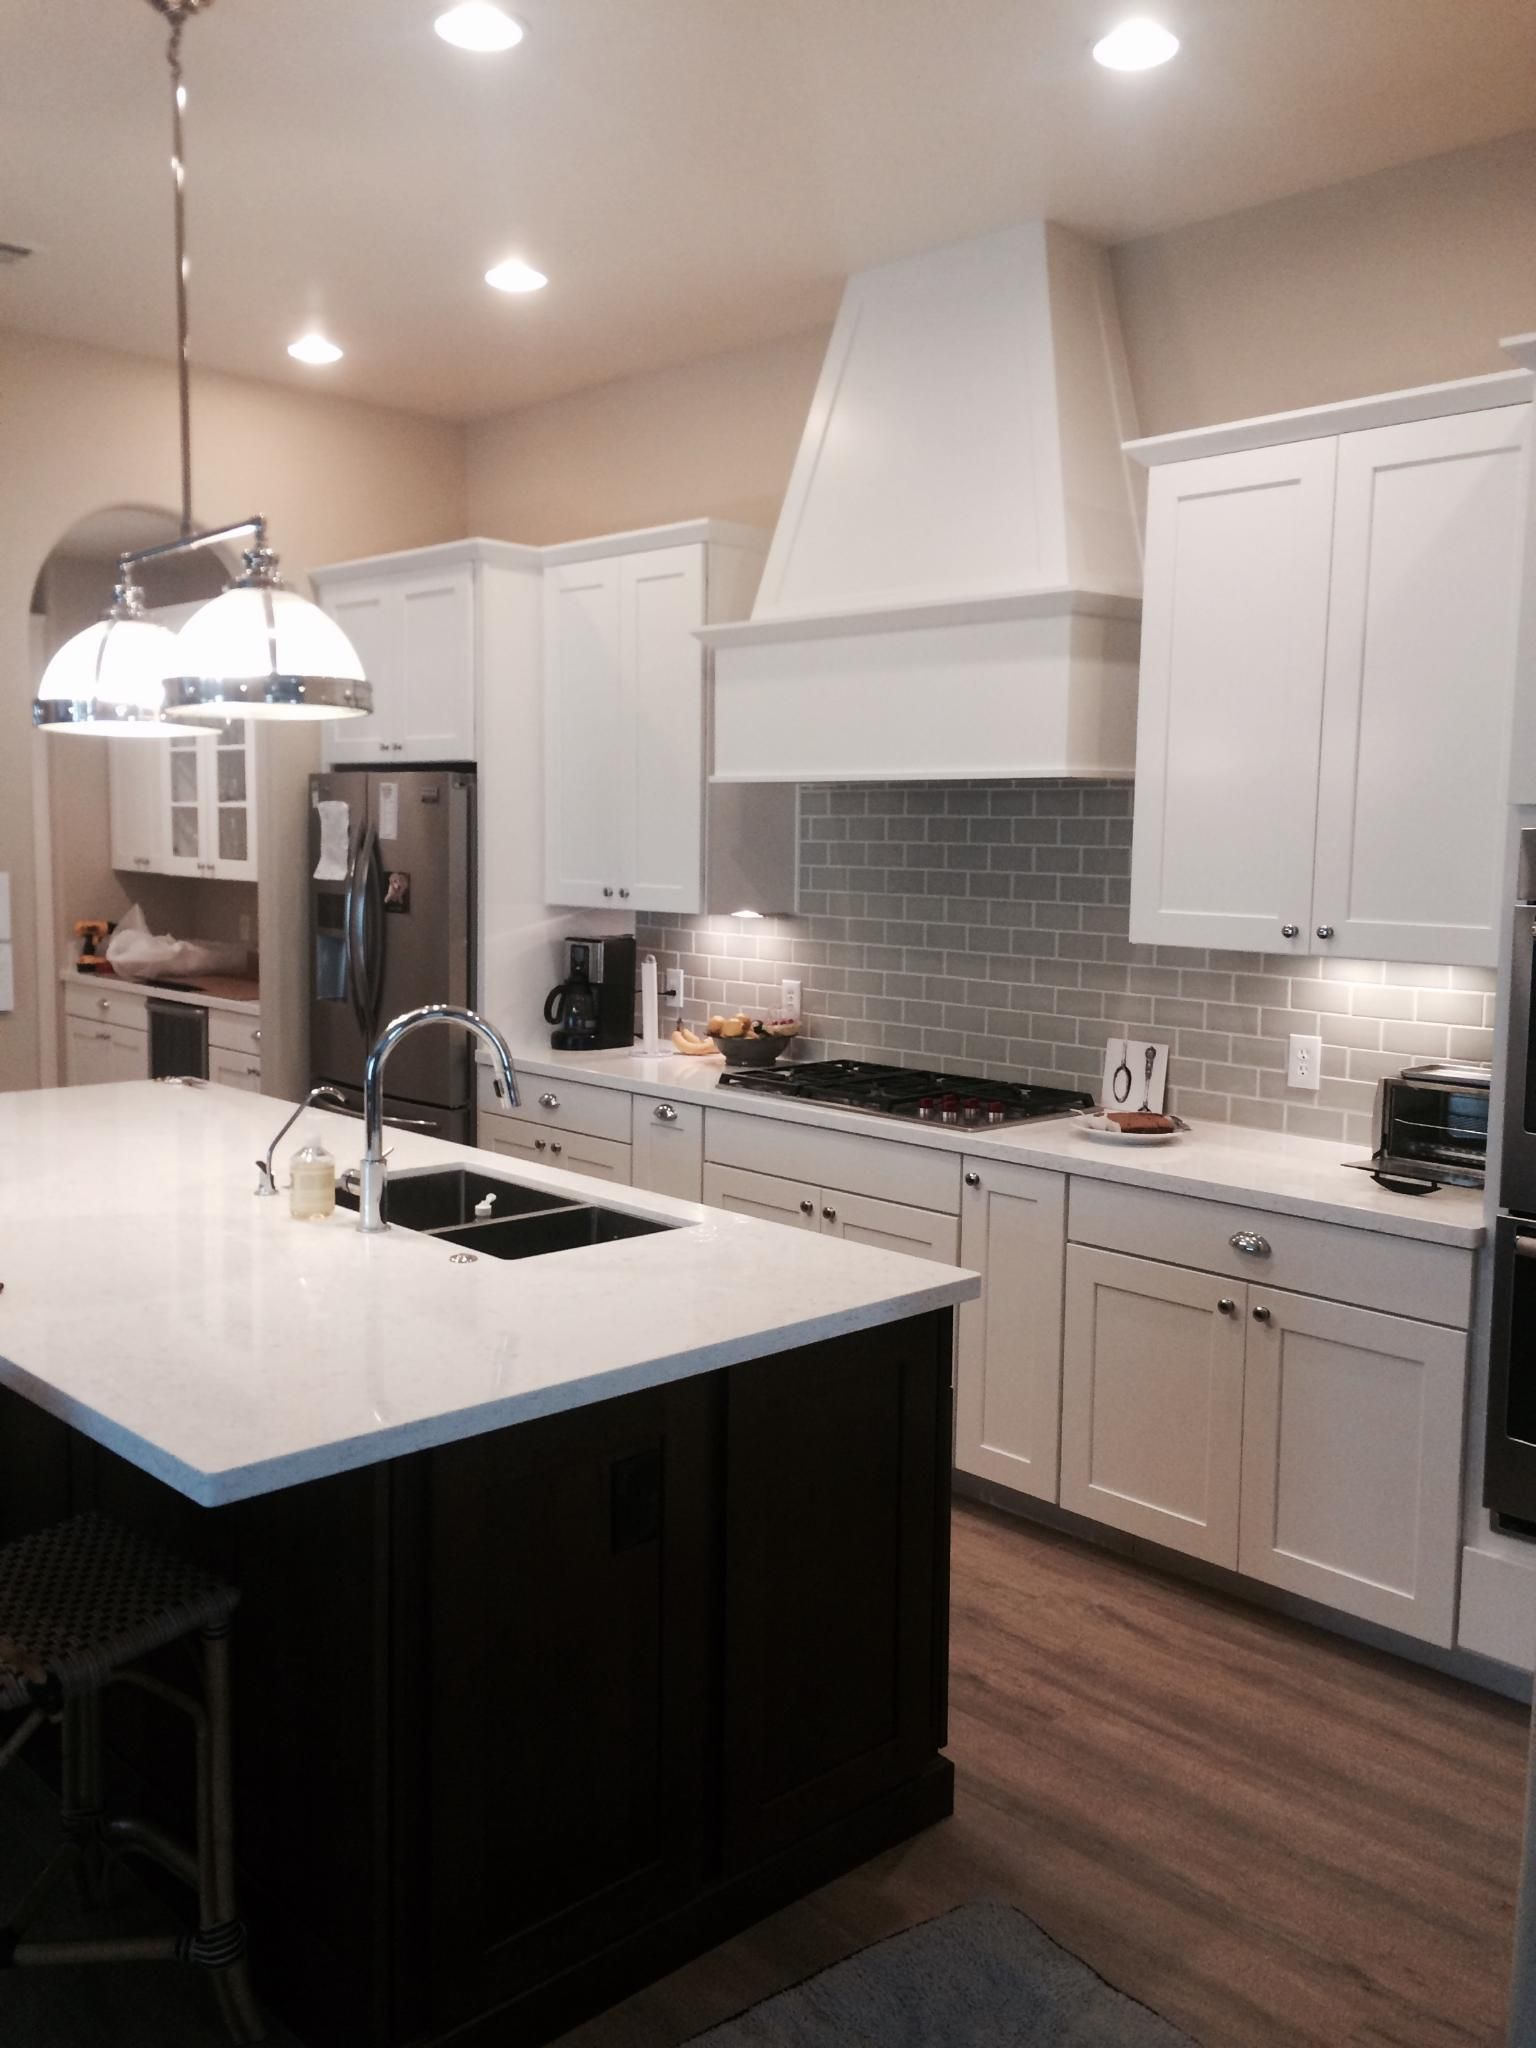 Waypoint Living Spaces Cabinets The Perimeter Is The 650s Door In Painted Linen Kitchen Cabinet Door Styles Kitchen Cabinet Styles Kitchen Remodel